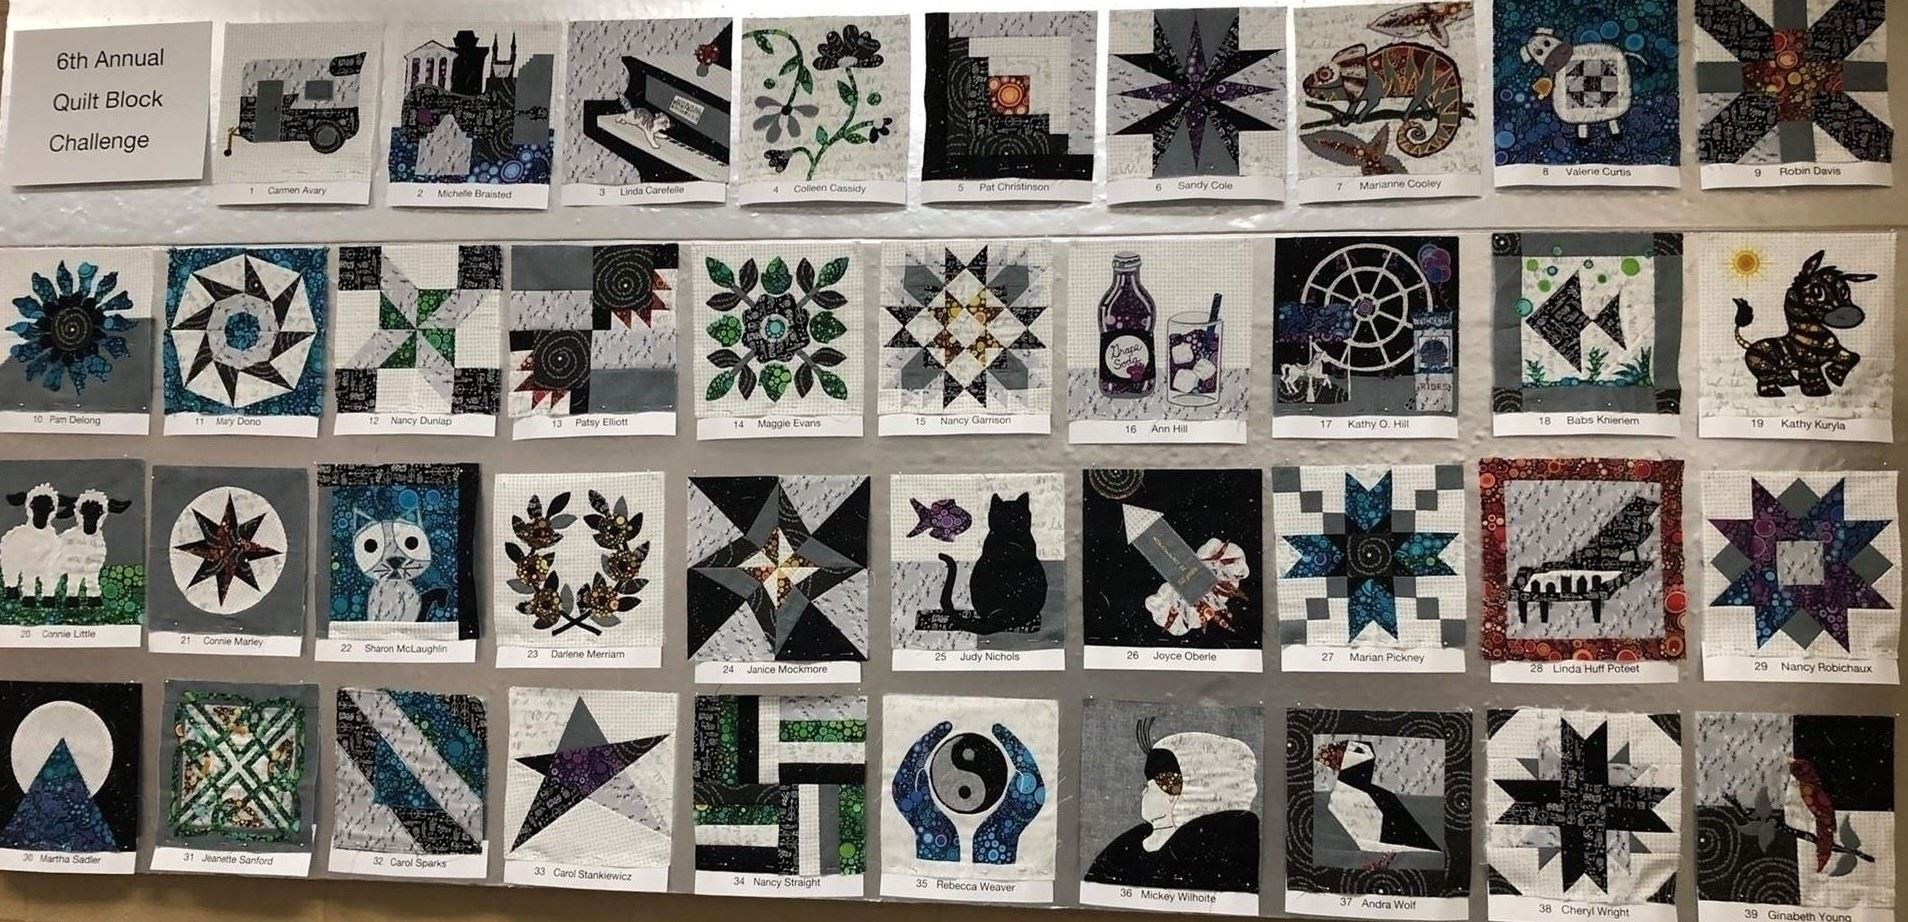 *2019 Quilt Block entries that will be made into the 2020 raffle quilt*